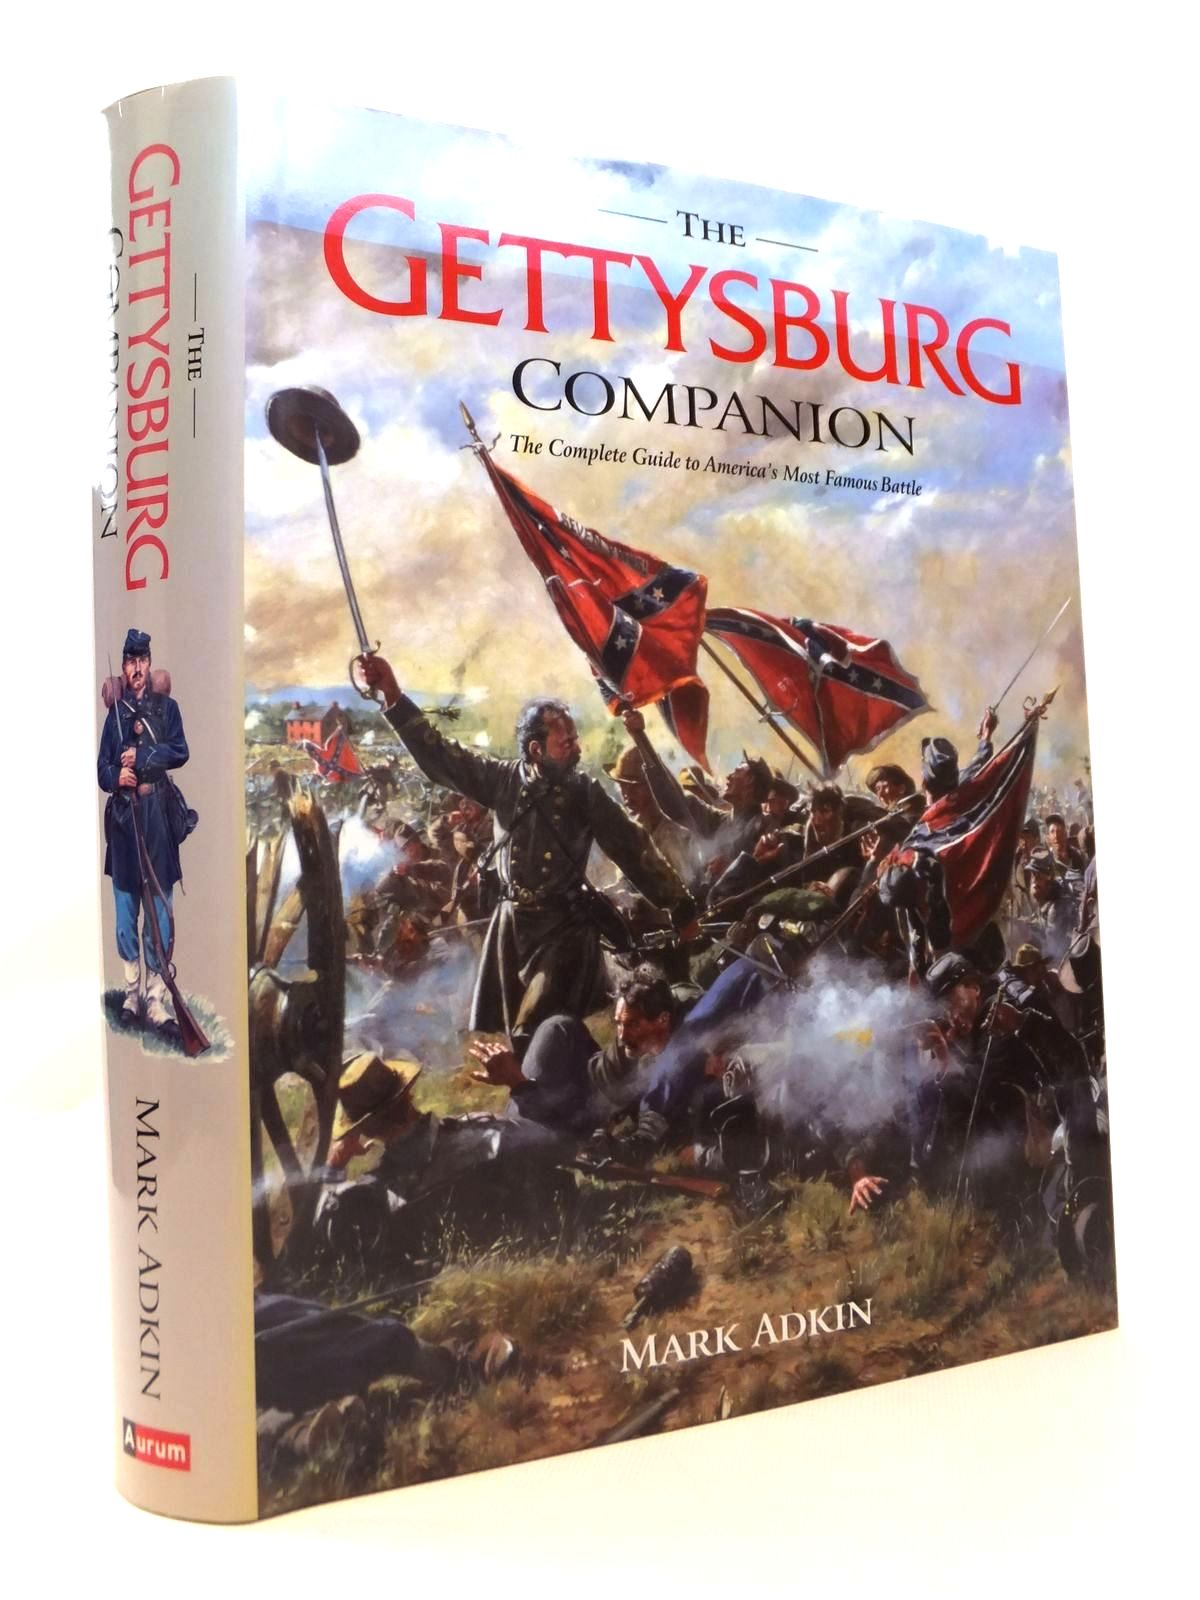 Photo of THE GETTYSBURG COMPANION THE COMPLETE GUIDE TO AMERICA'S MOST FAMOUS BATTLE written by Adkin, Mark published by Aurum Press (STOCK CODE: 1812586)  for sale by Stella & Rose's Books